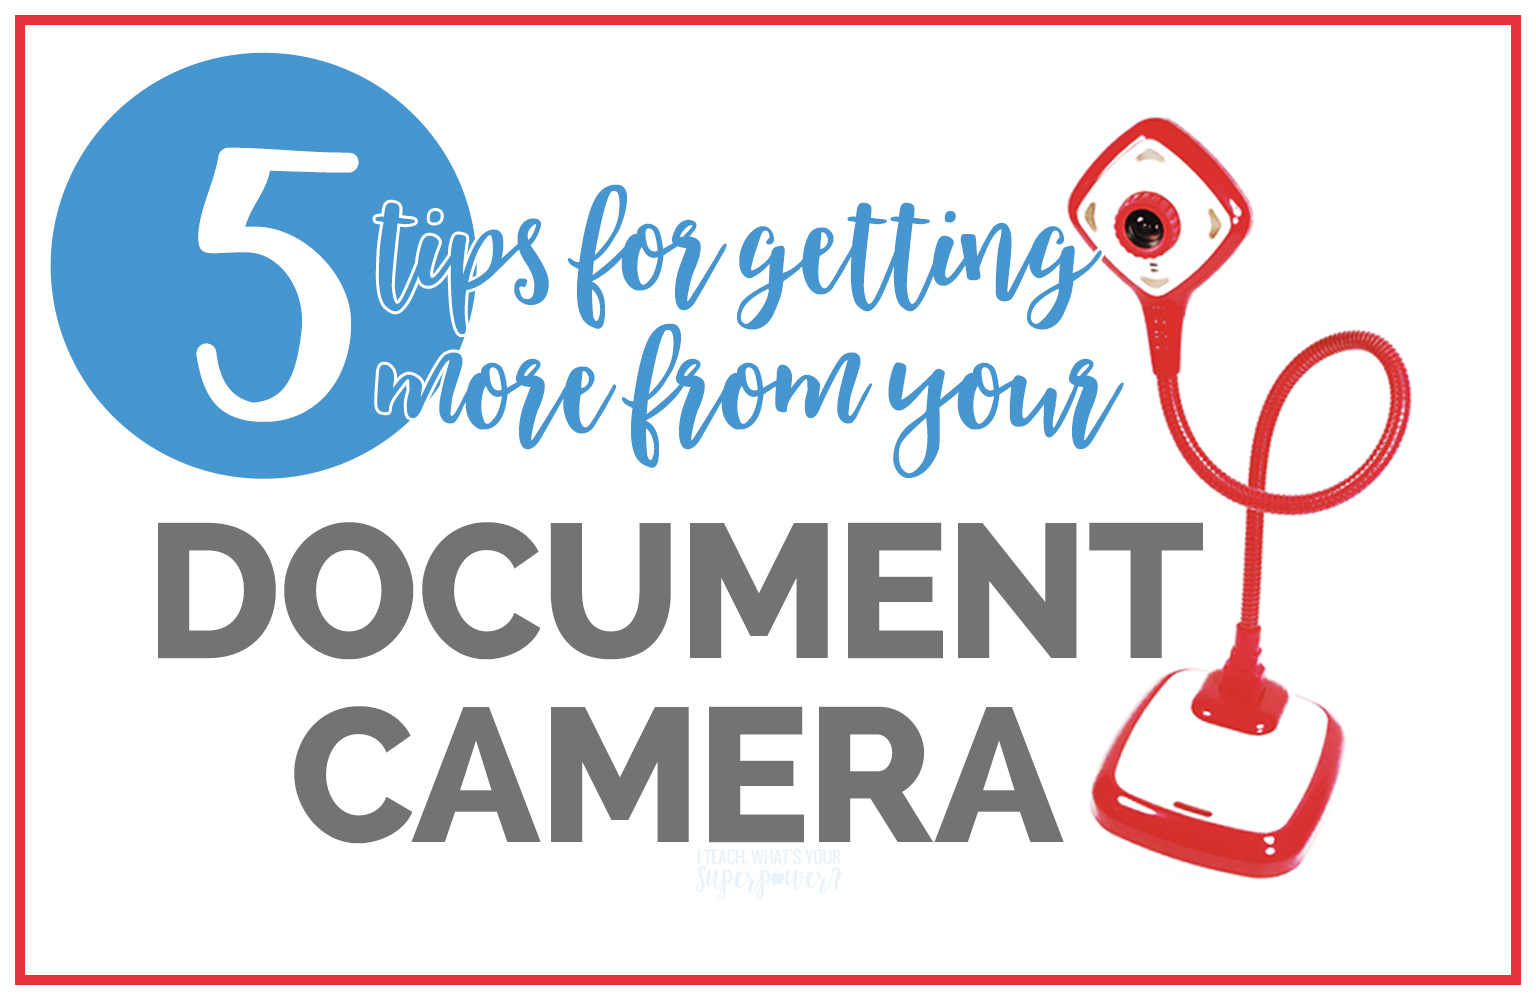 5 Tips For Getting More From Your Hue Document Camera